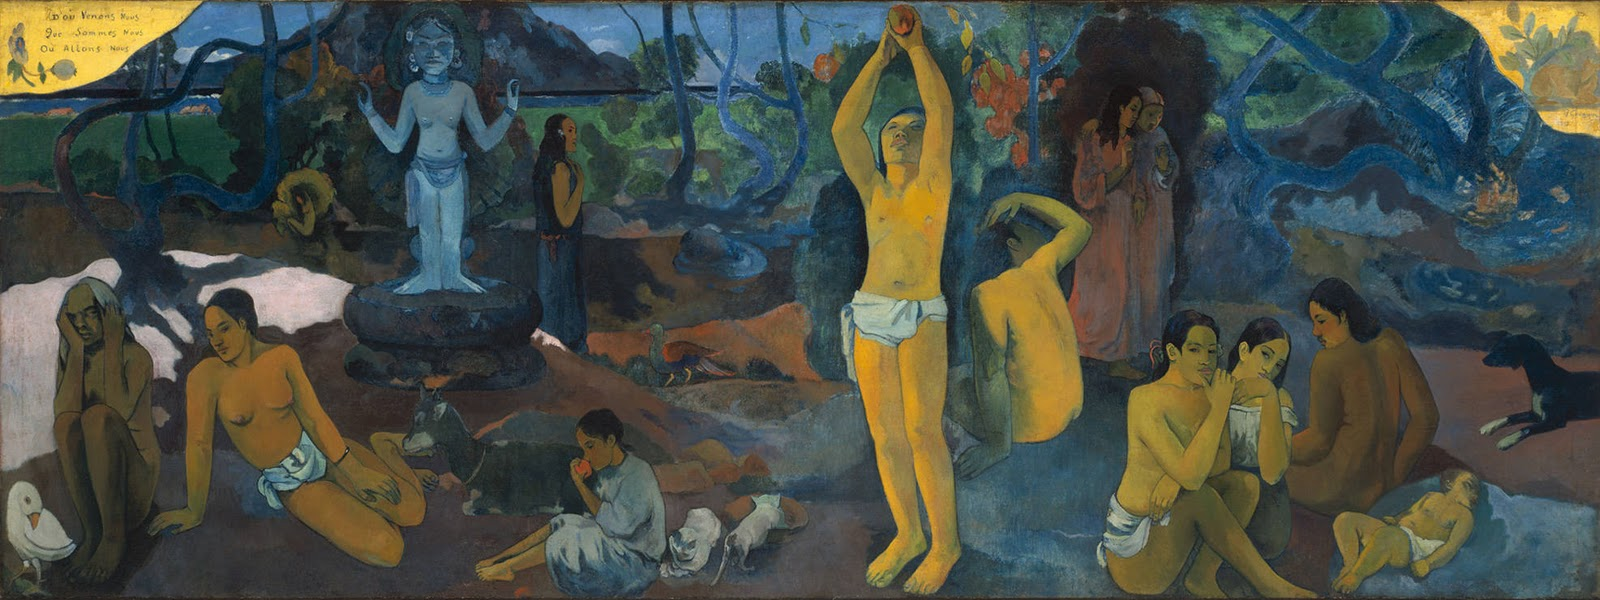 Gauguin's mystical masterpiece